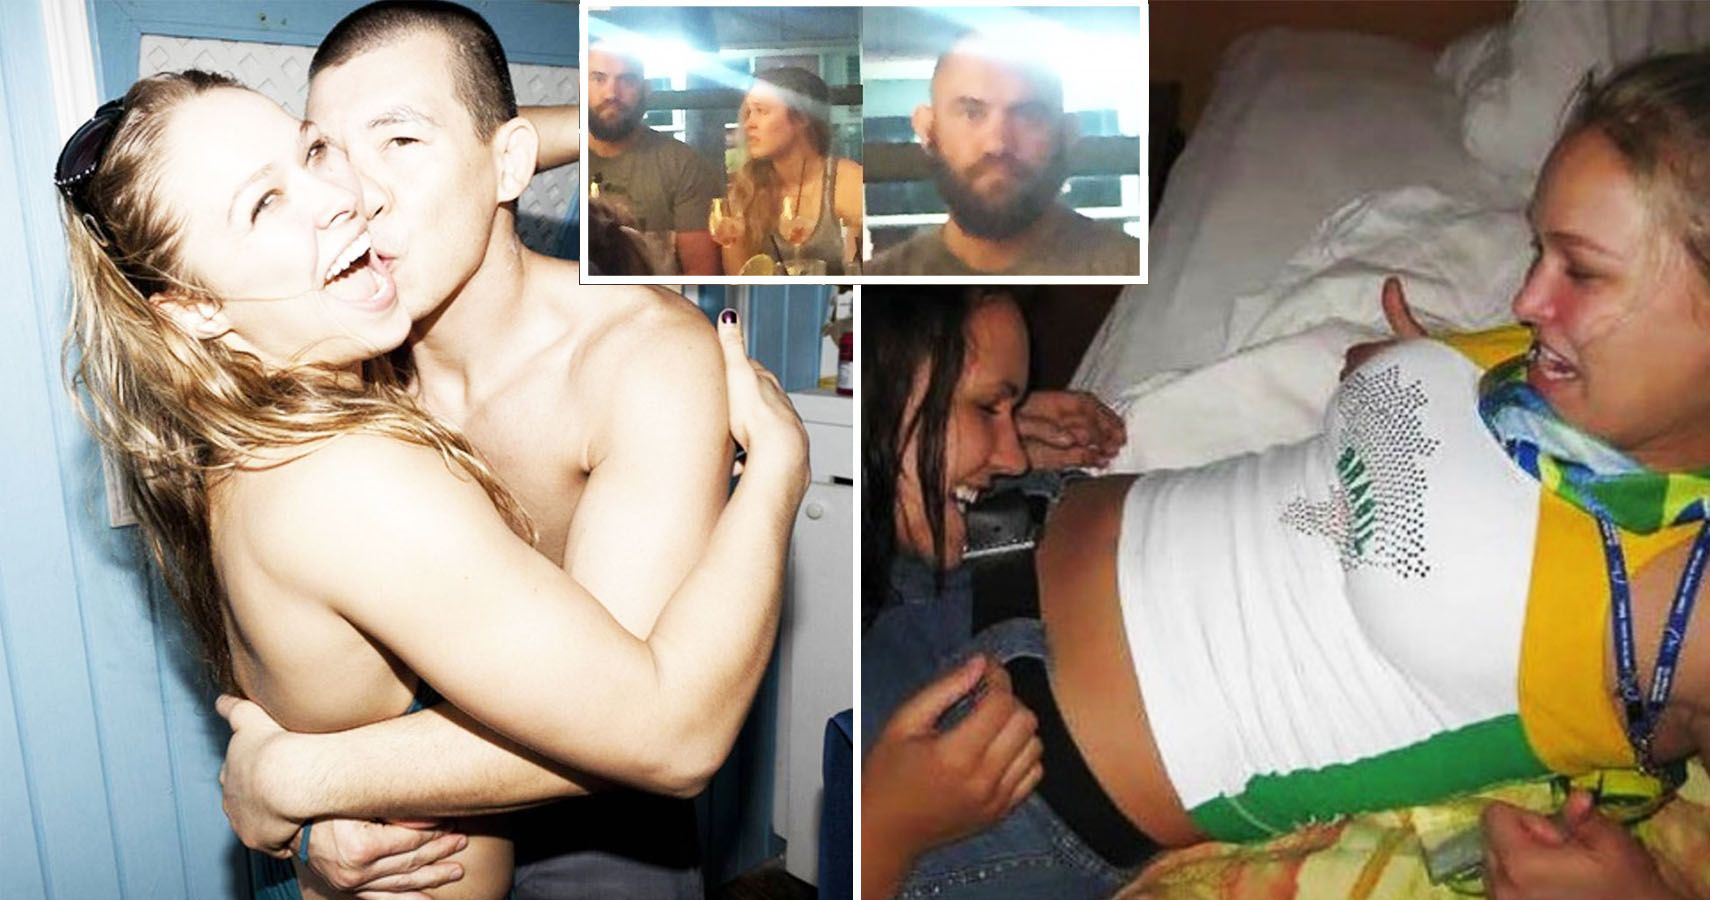 ronda rousey cody mckenzie dating Paige vanzant's boyfriend cody garbrandt is actually her ex-boyfriend garbrandt is an mma fighter just like her, which was used against him in the breakup paige says they broke up because they're both too busy pursuing their fighting careers to sustain a relationship.